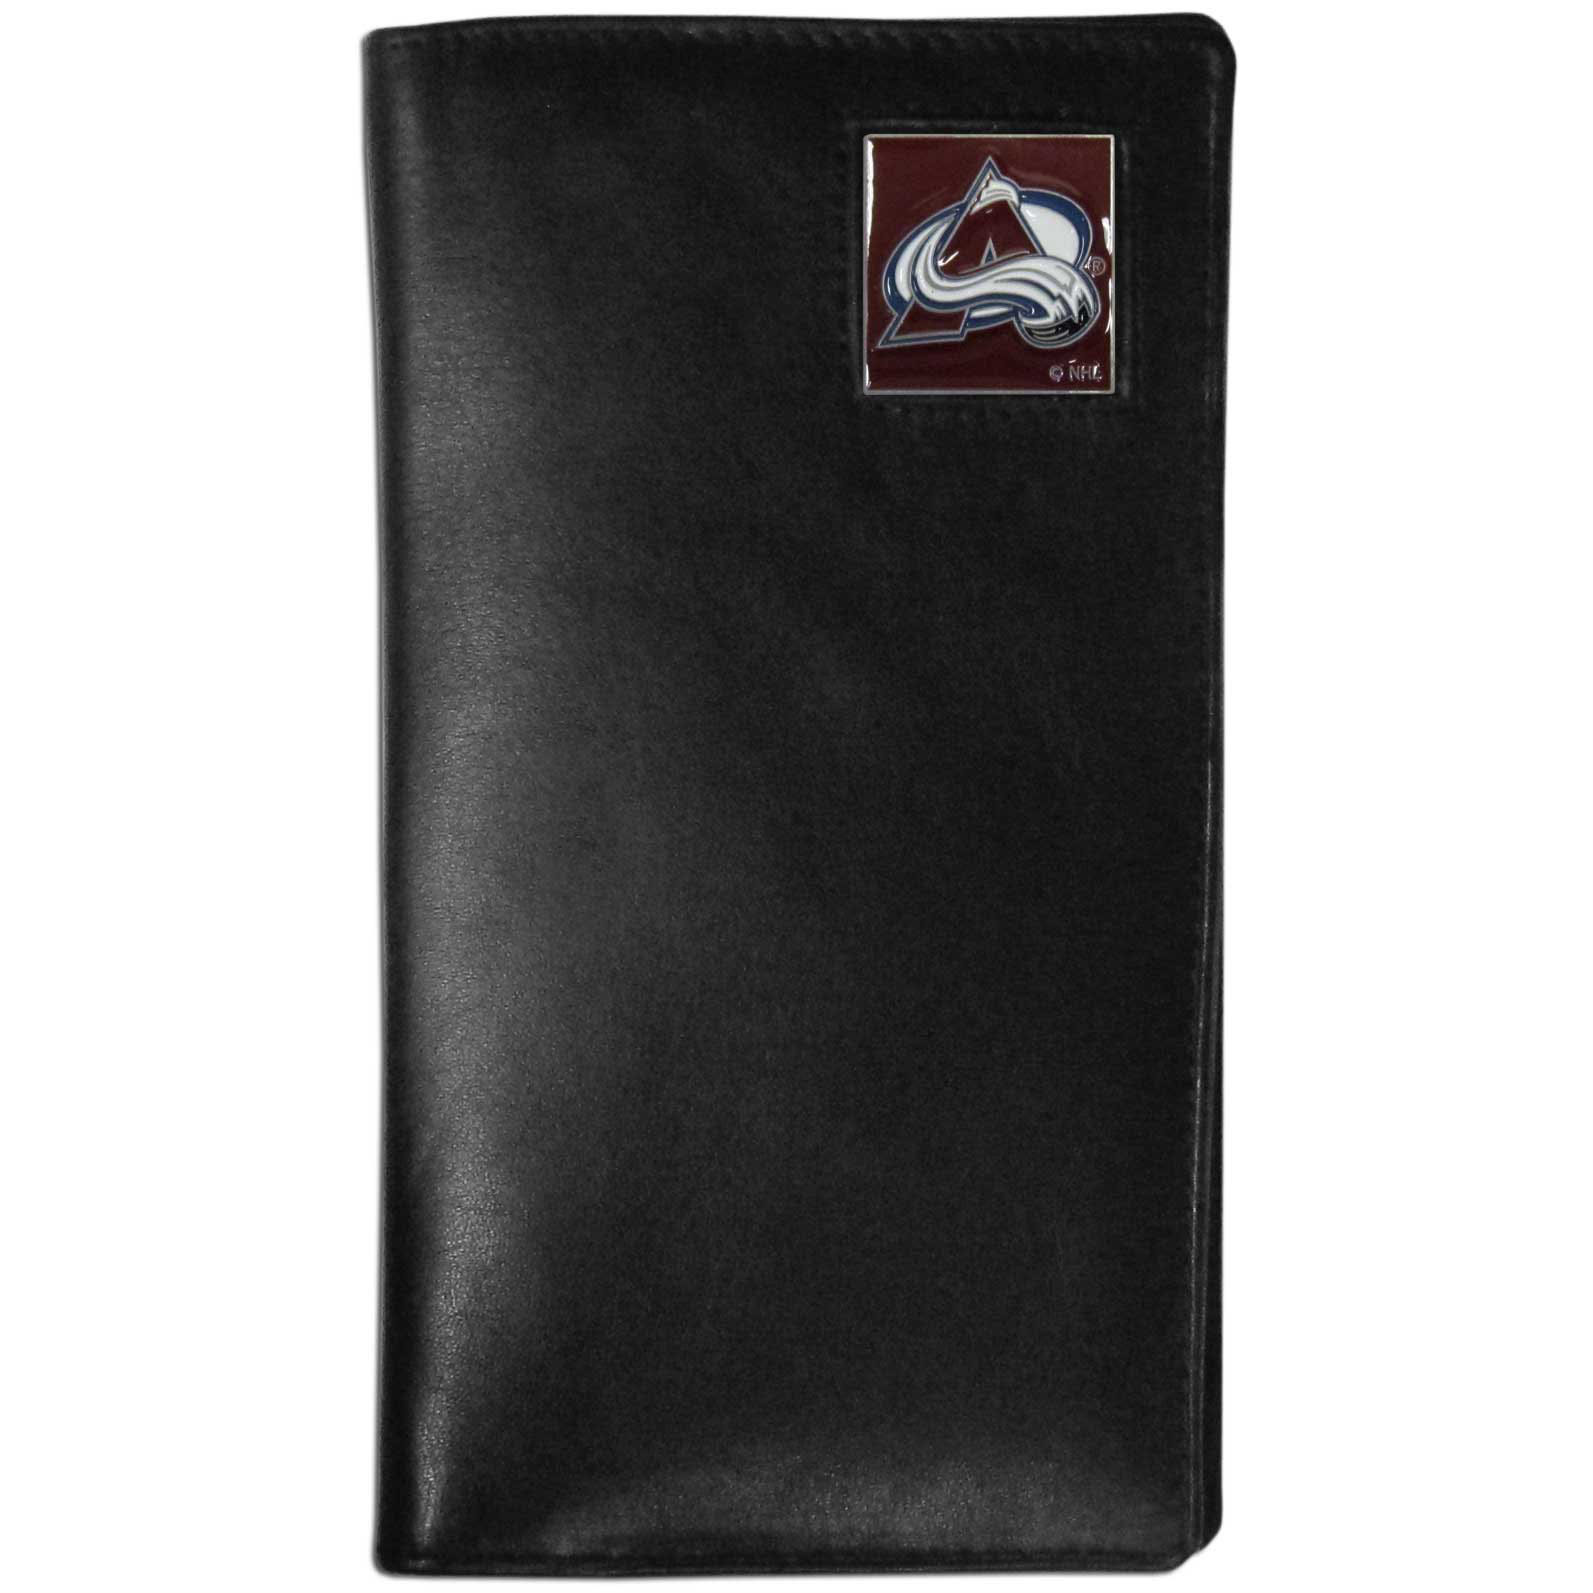 Colorado Avalanche Tall Leather Wallet - This officially licensed Colorado Avalanche tall leather wallet cover is made of high quality leather with a fully cast metal Colorado Avalanche emblem with enameled Colorado Avalanche color detail. The tall leather wallet cover fits both side and top loaded checks and includes a large zippered pocket, windowed ID slot, numerous credit card slots and billfold pocket.